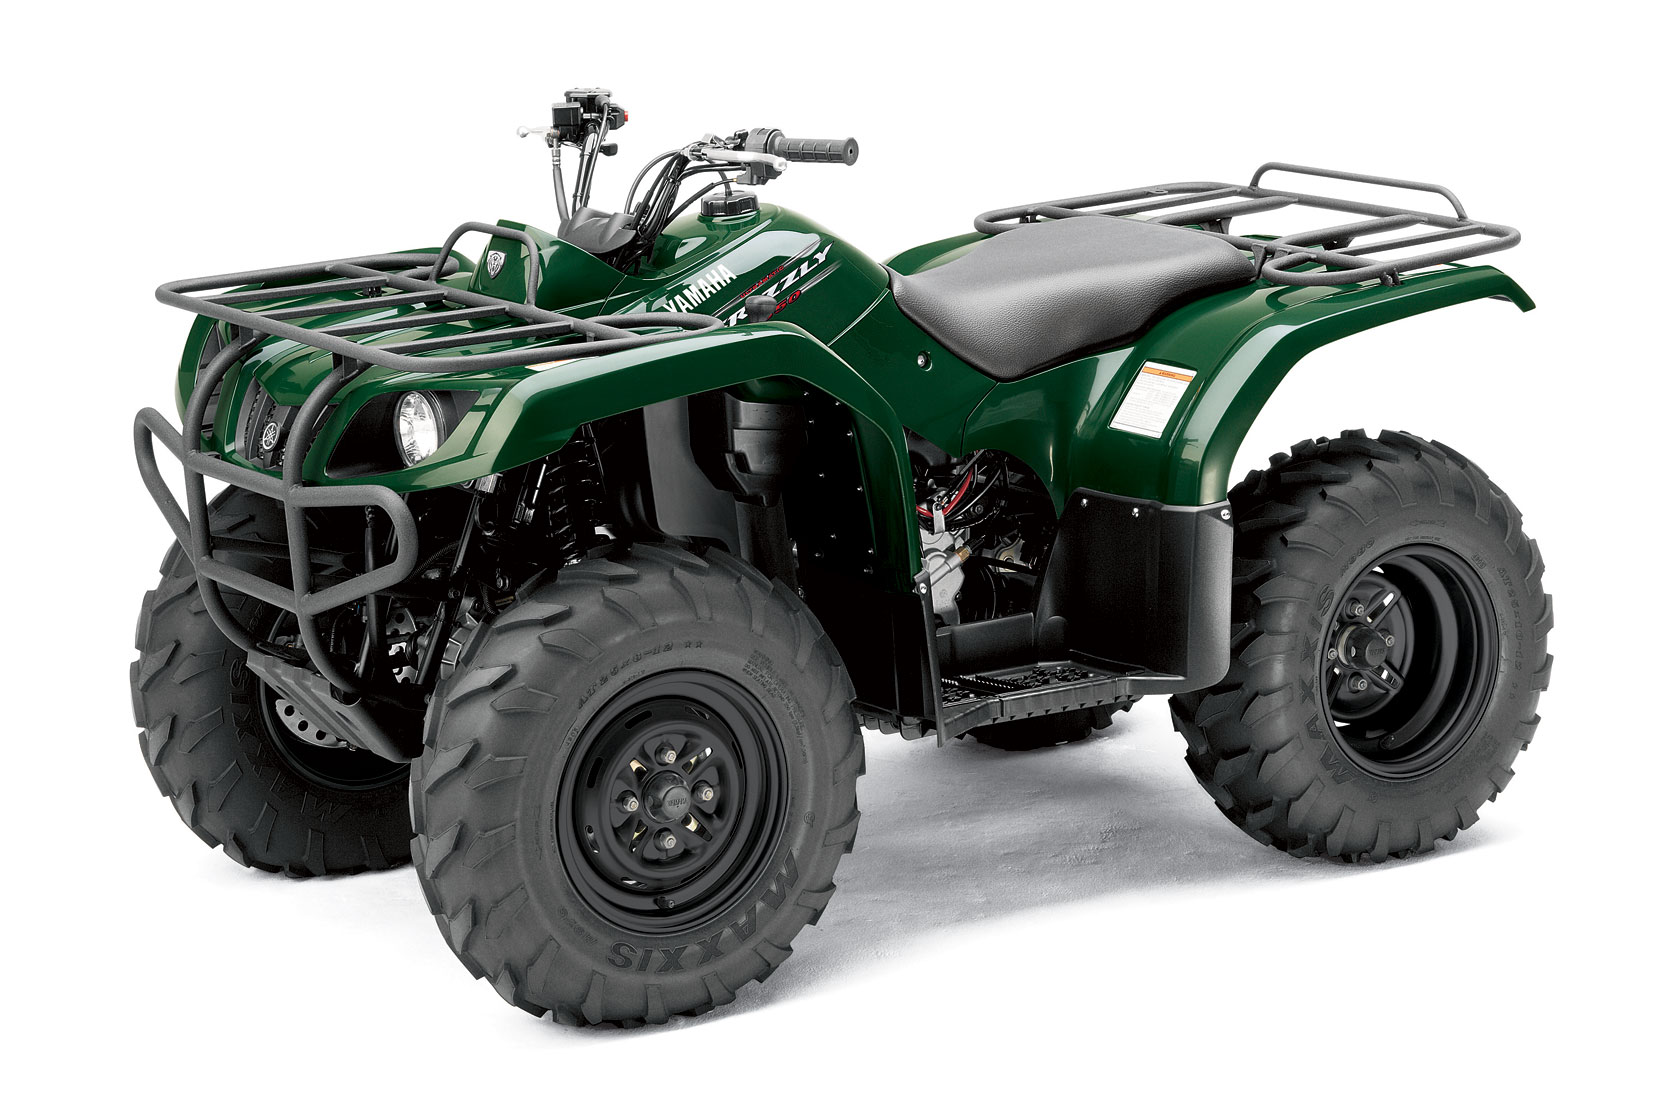 yamaha grizzly 80 specs 2005, 2006, 2007, 2008, 2009, 2010 Yamaha Grizzly 350 Wiring Diagram grizzly 80 wiring diagram